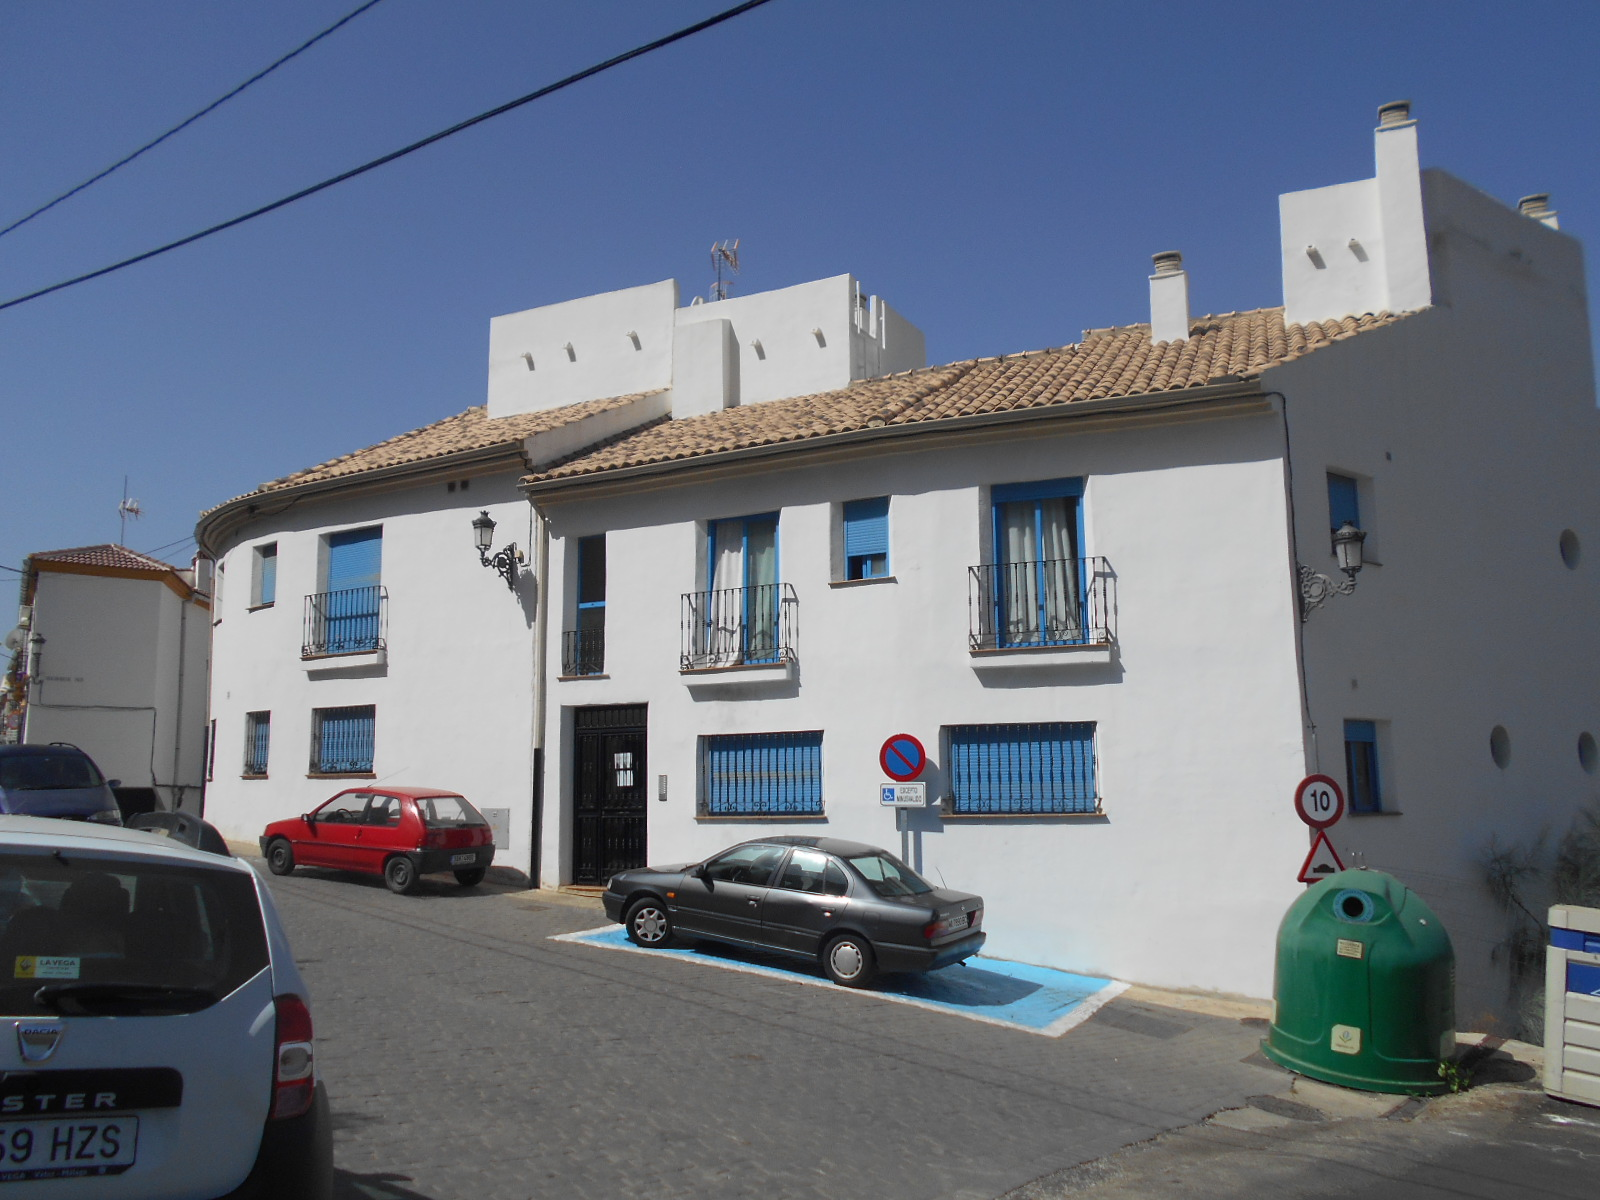 2 BEDROOM APARTMENT IN ALCAUCIN From £250/WEEK UP TO 6 PEOPLE